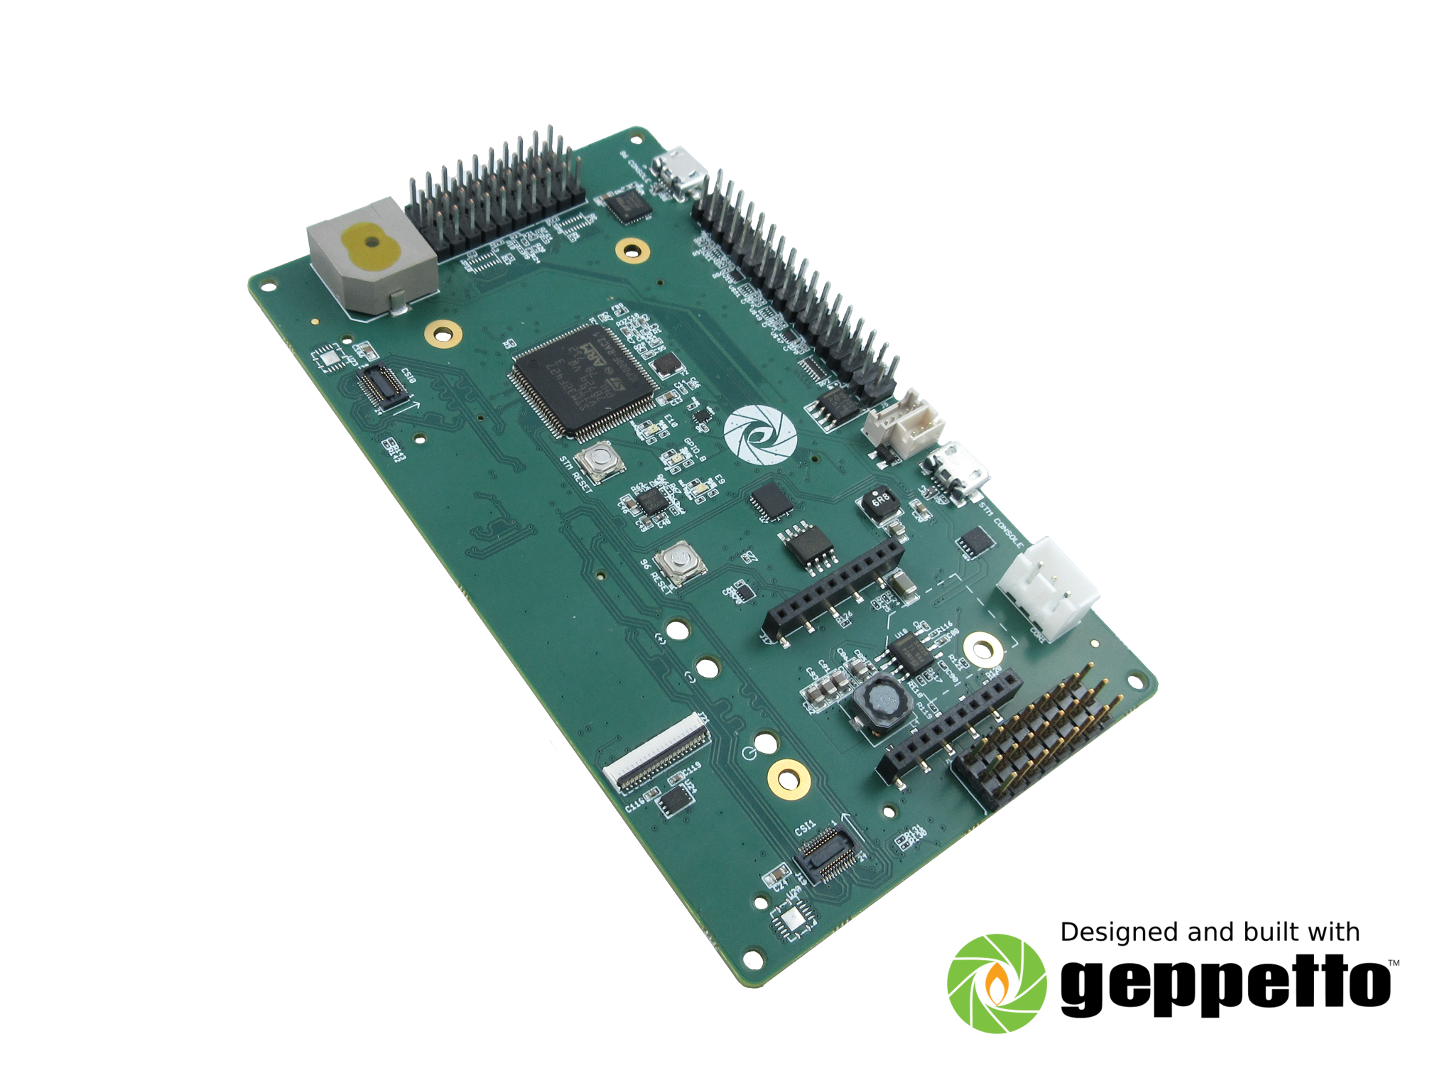 AeroCore 2CD for Dragonboard 410C board